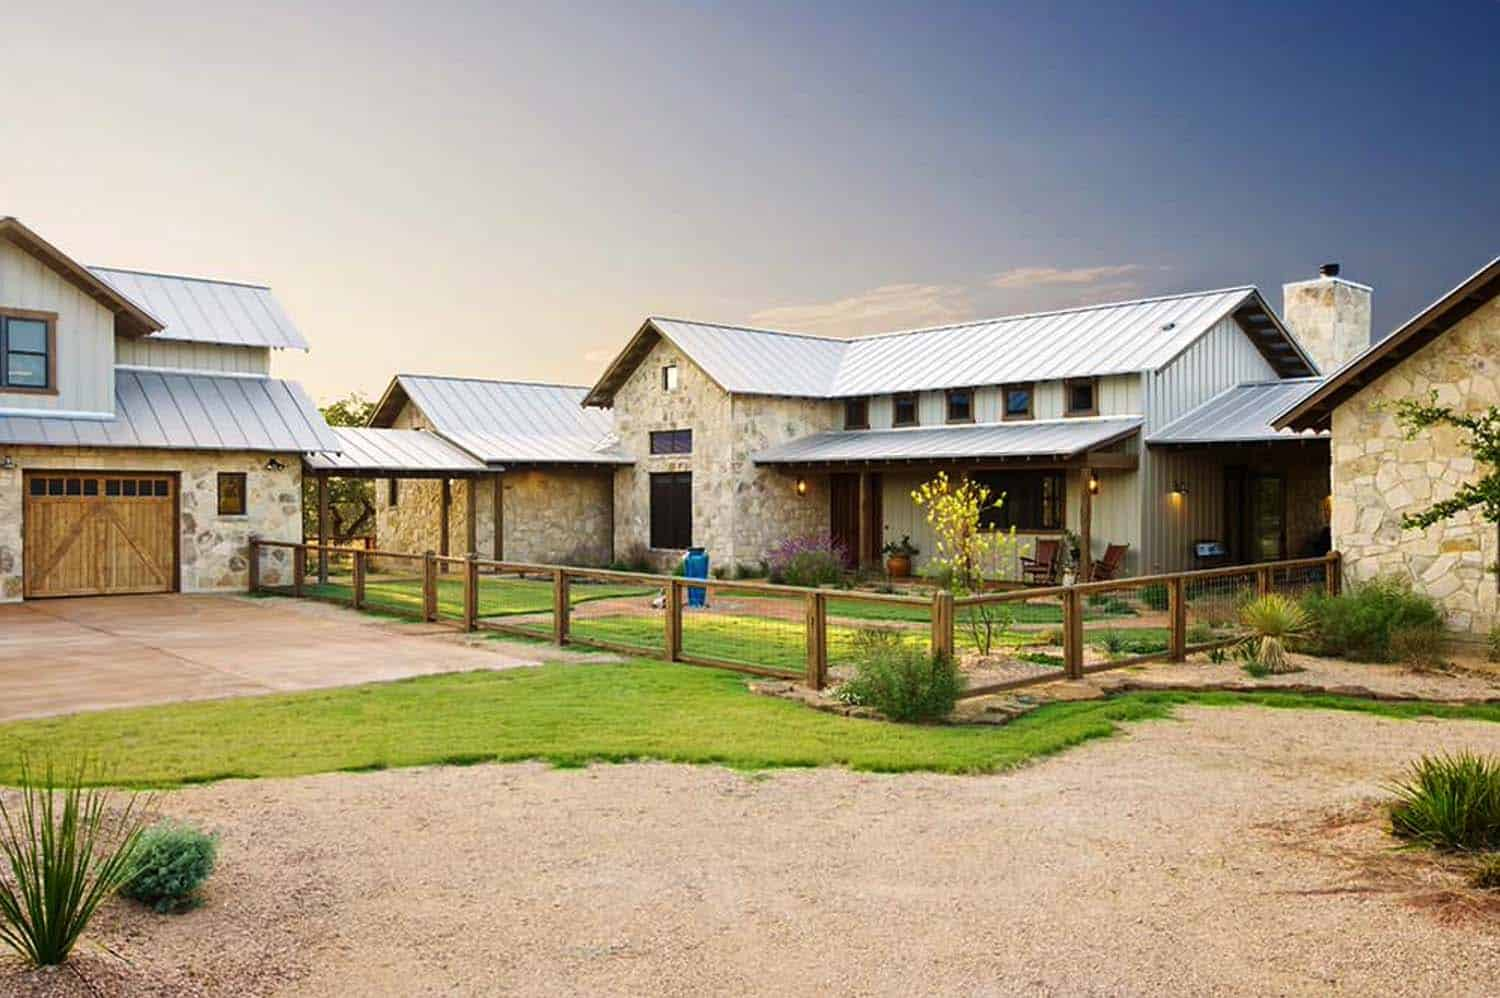 Rustic ranch house designed for family gatherings in texas for Rustic style house plans